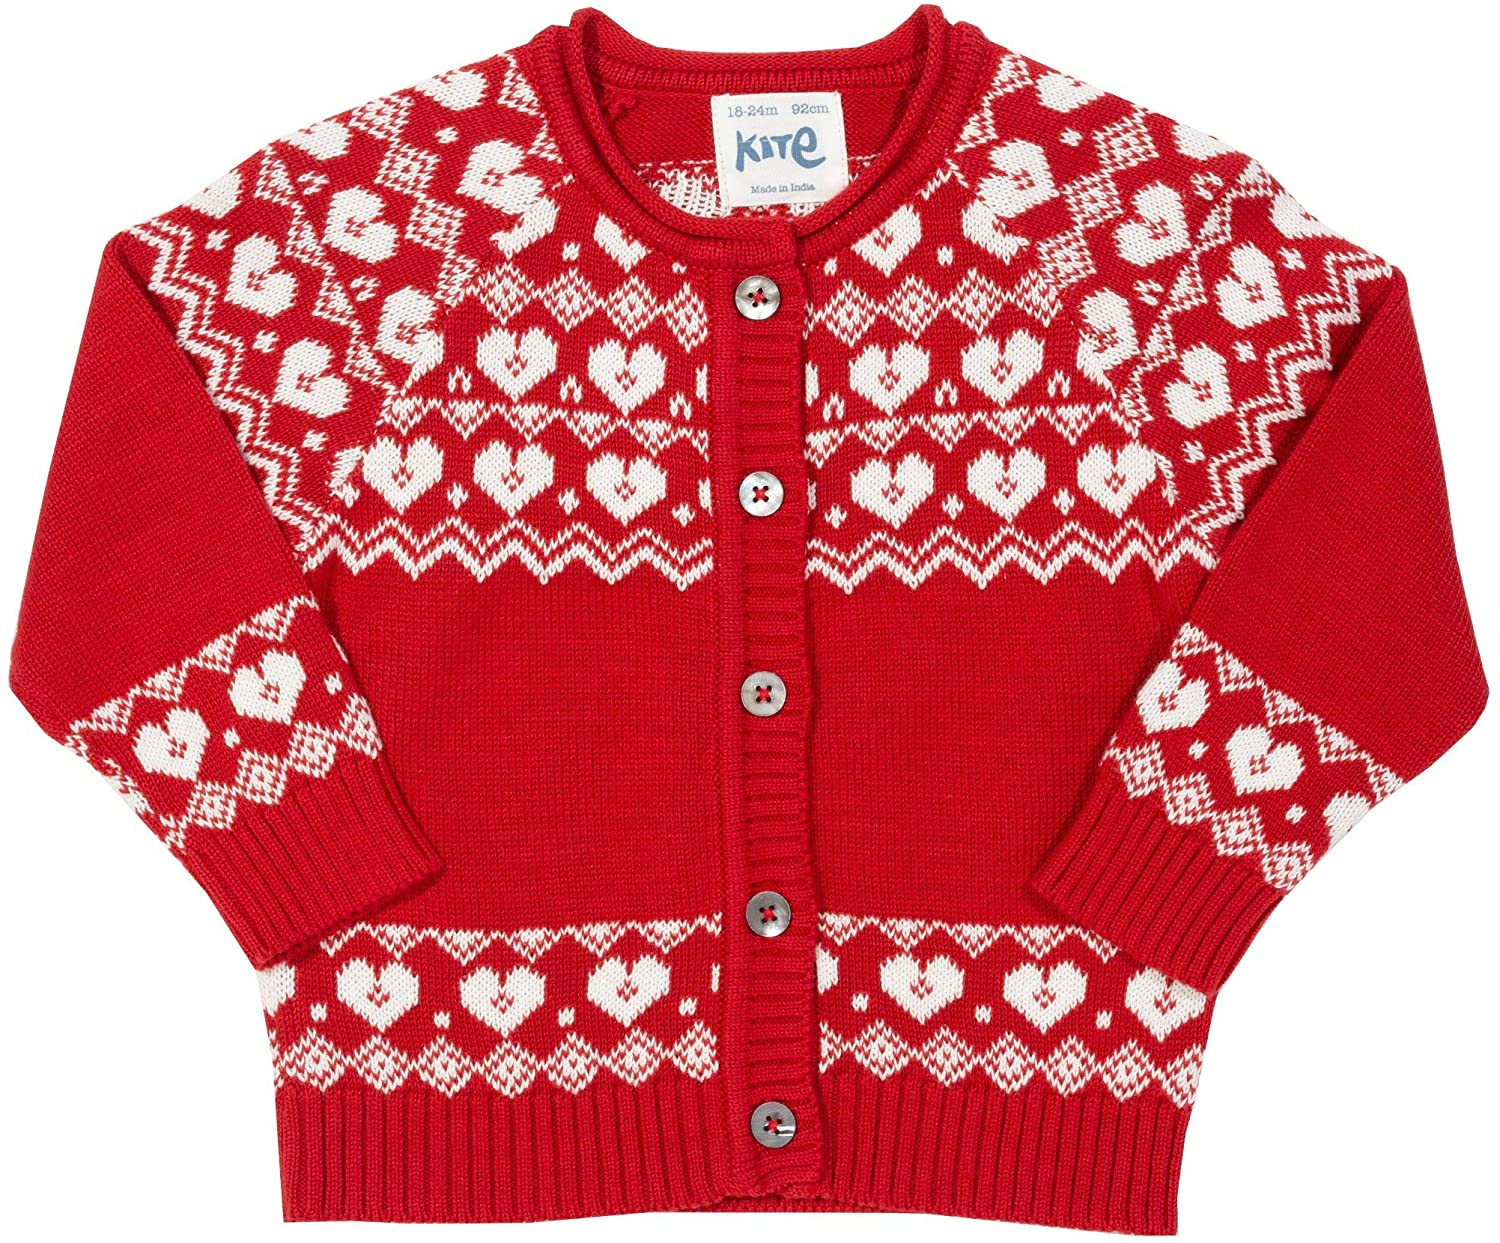 NOW £14.50 Kite Nordic Heart Cardigan (Was £29)